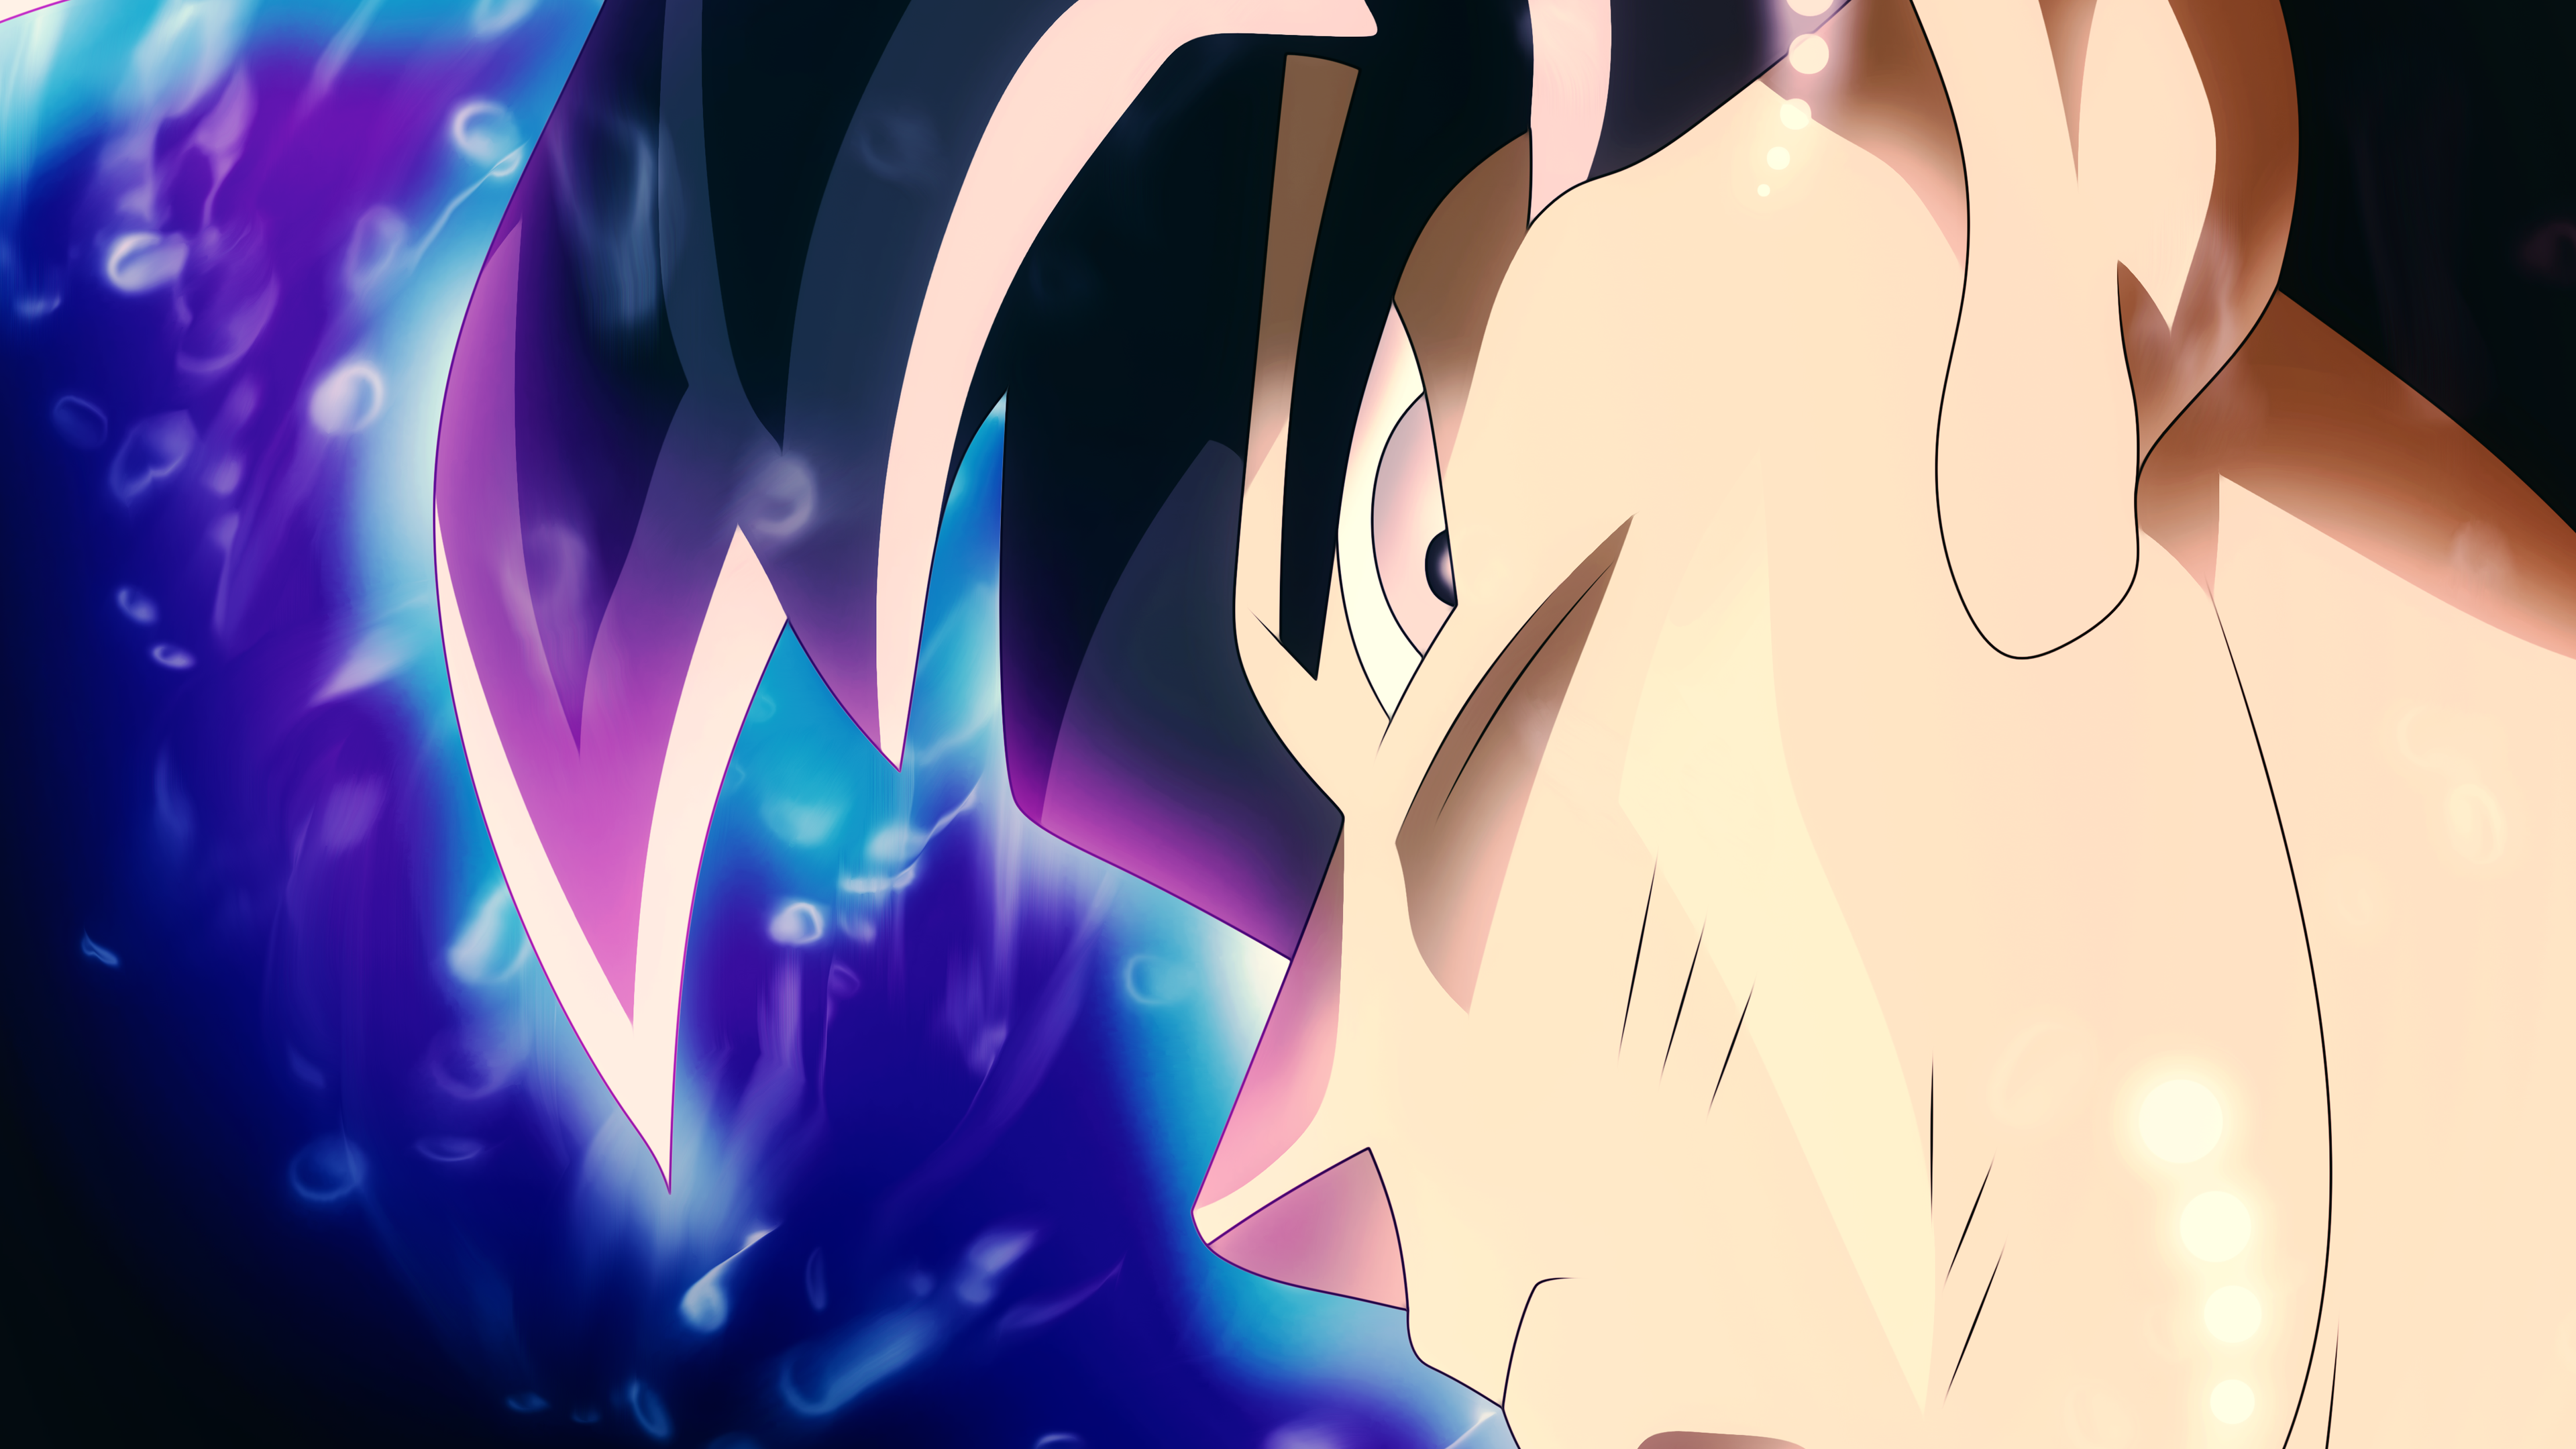 goku ultra instinct wallpaper hd, goku ultra instinct mastered